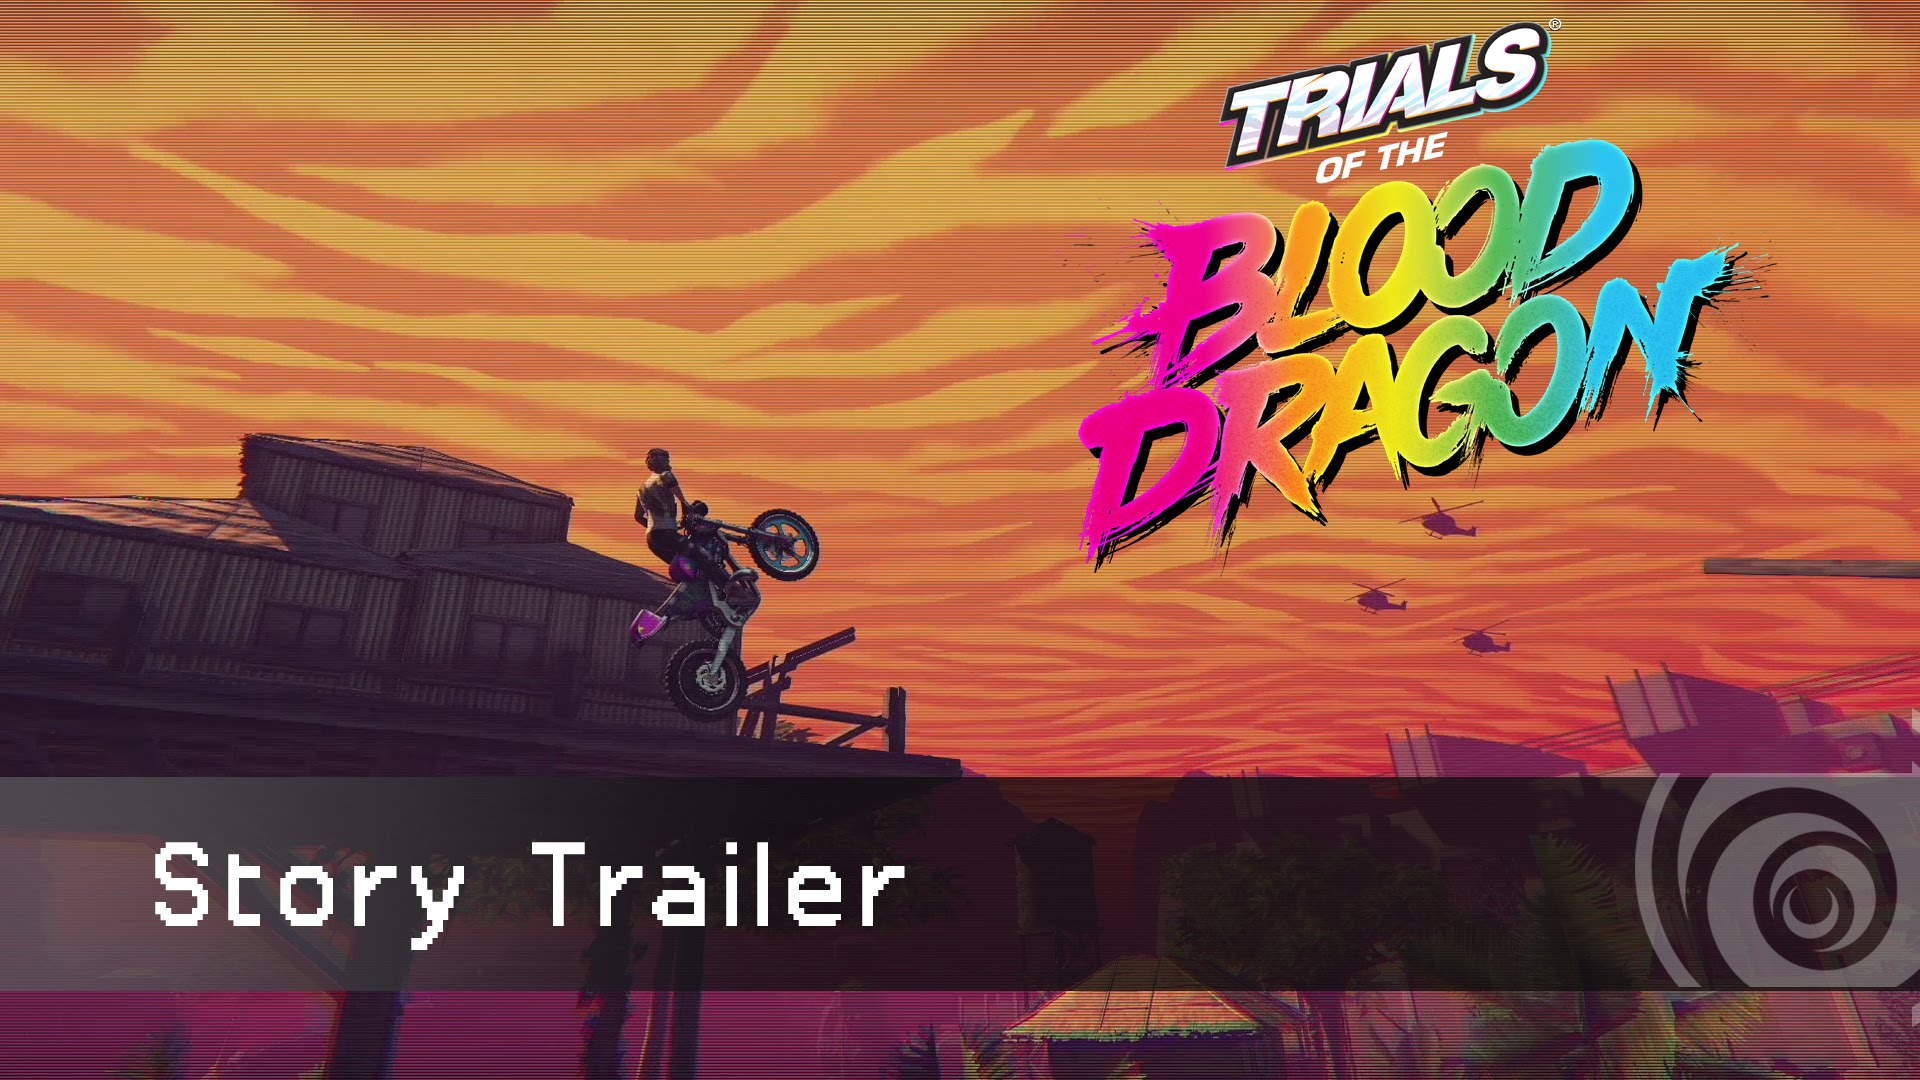 TRIALS of the BLOOD DRAGON - Story Trailer